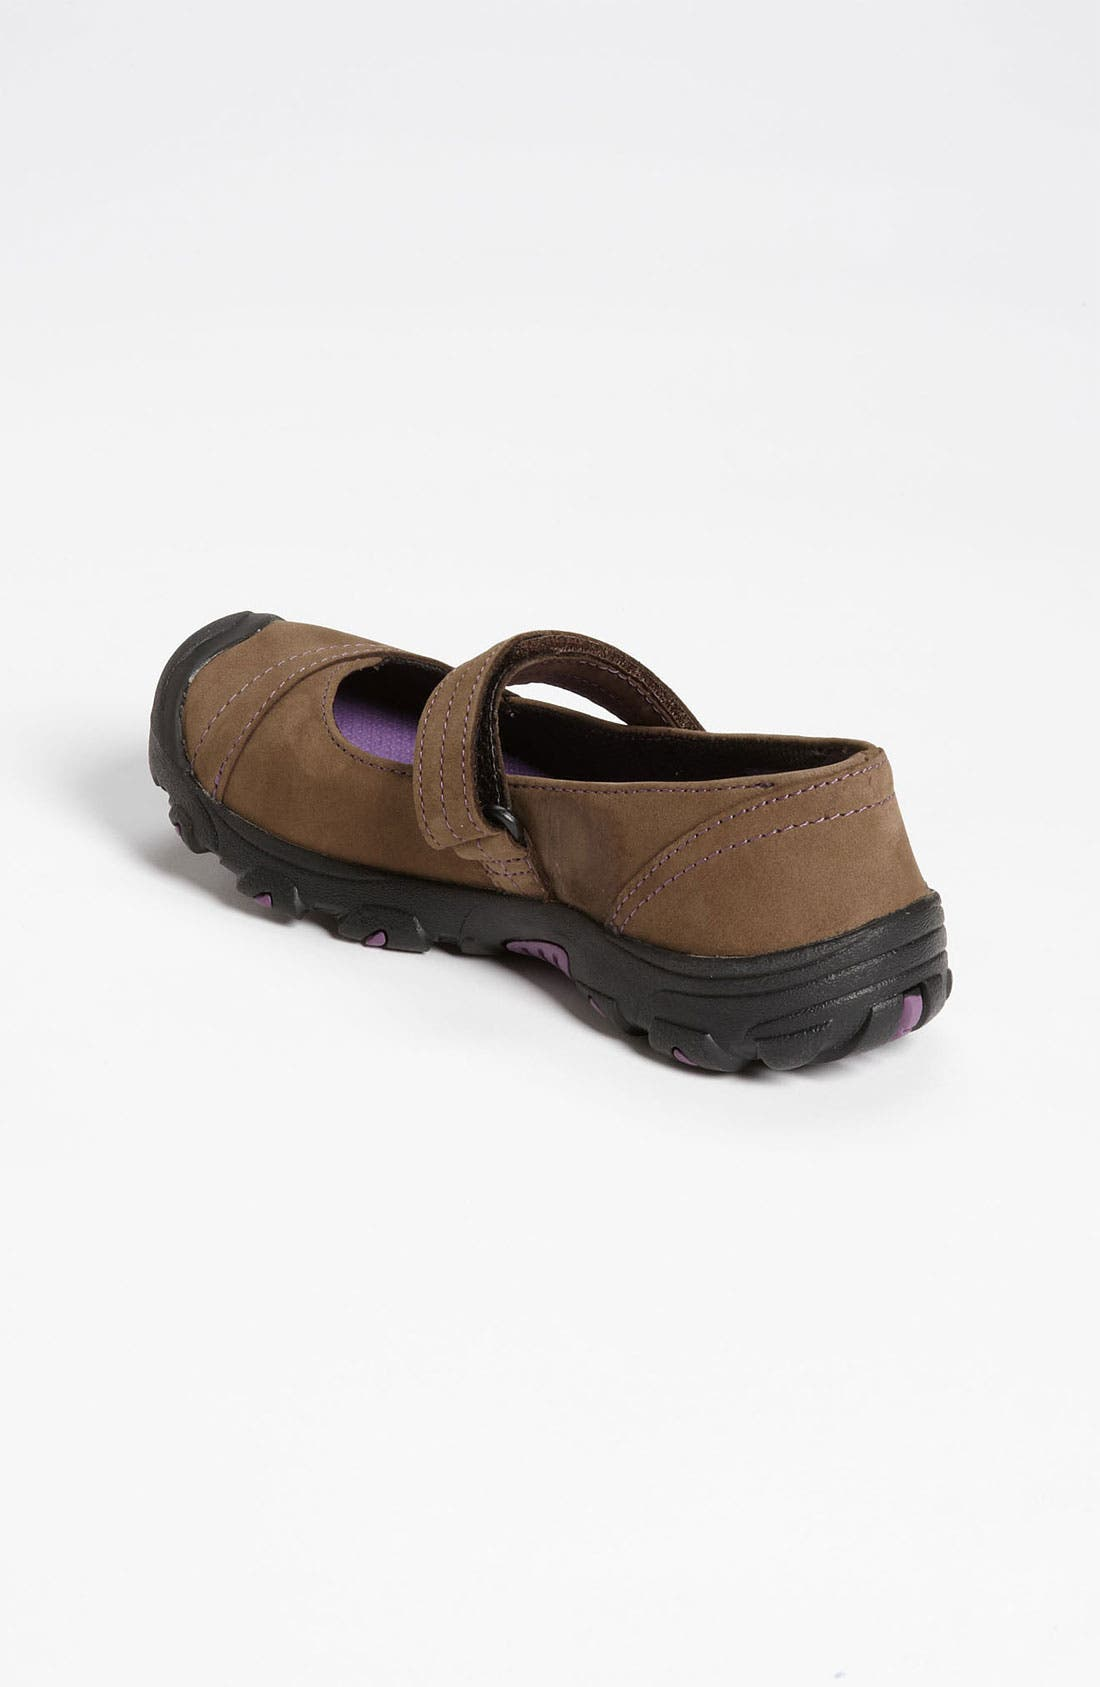 Alternate Image 2  - Keen 'Libby' Slip-On (Walker, Toddler, Little Kid & Big Kid)